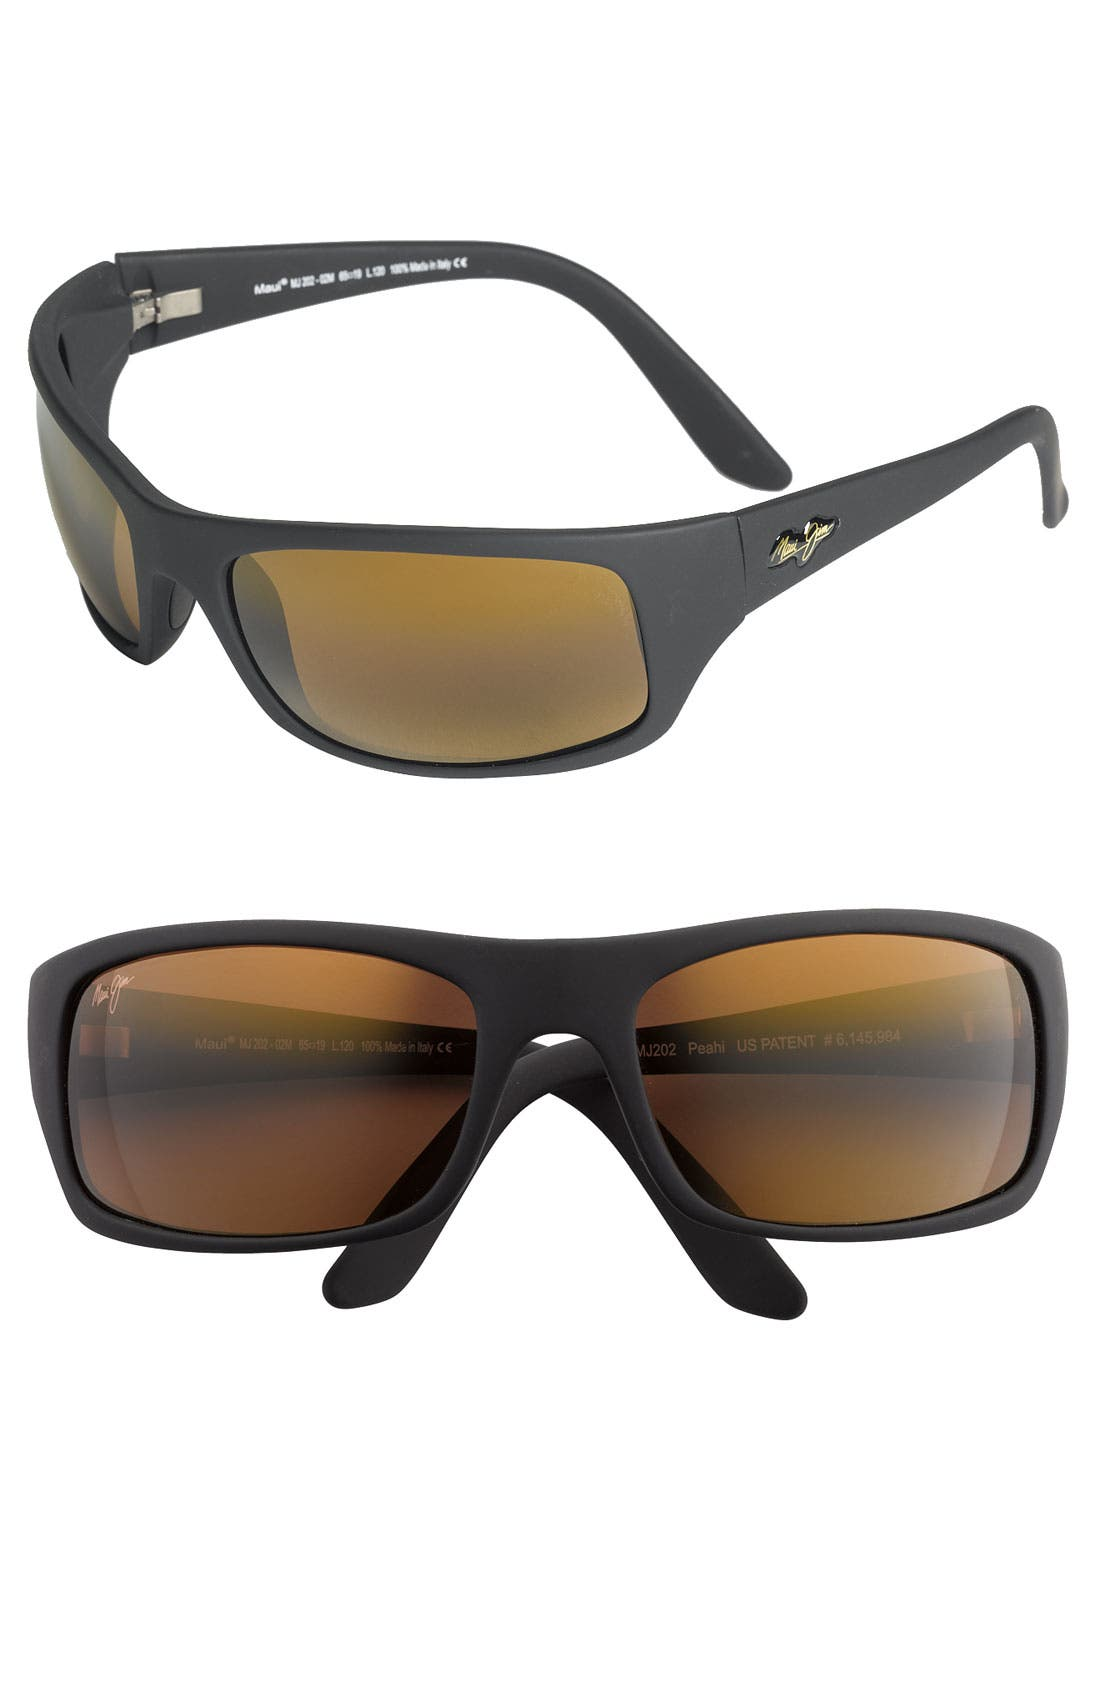 Maui Jim 'Peahi - PolarizedPlus®2' 65mm Sunglasses